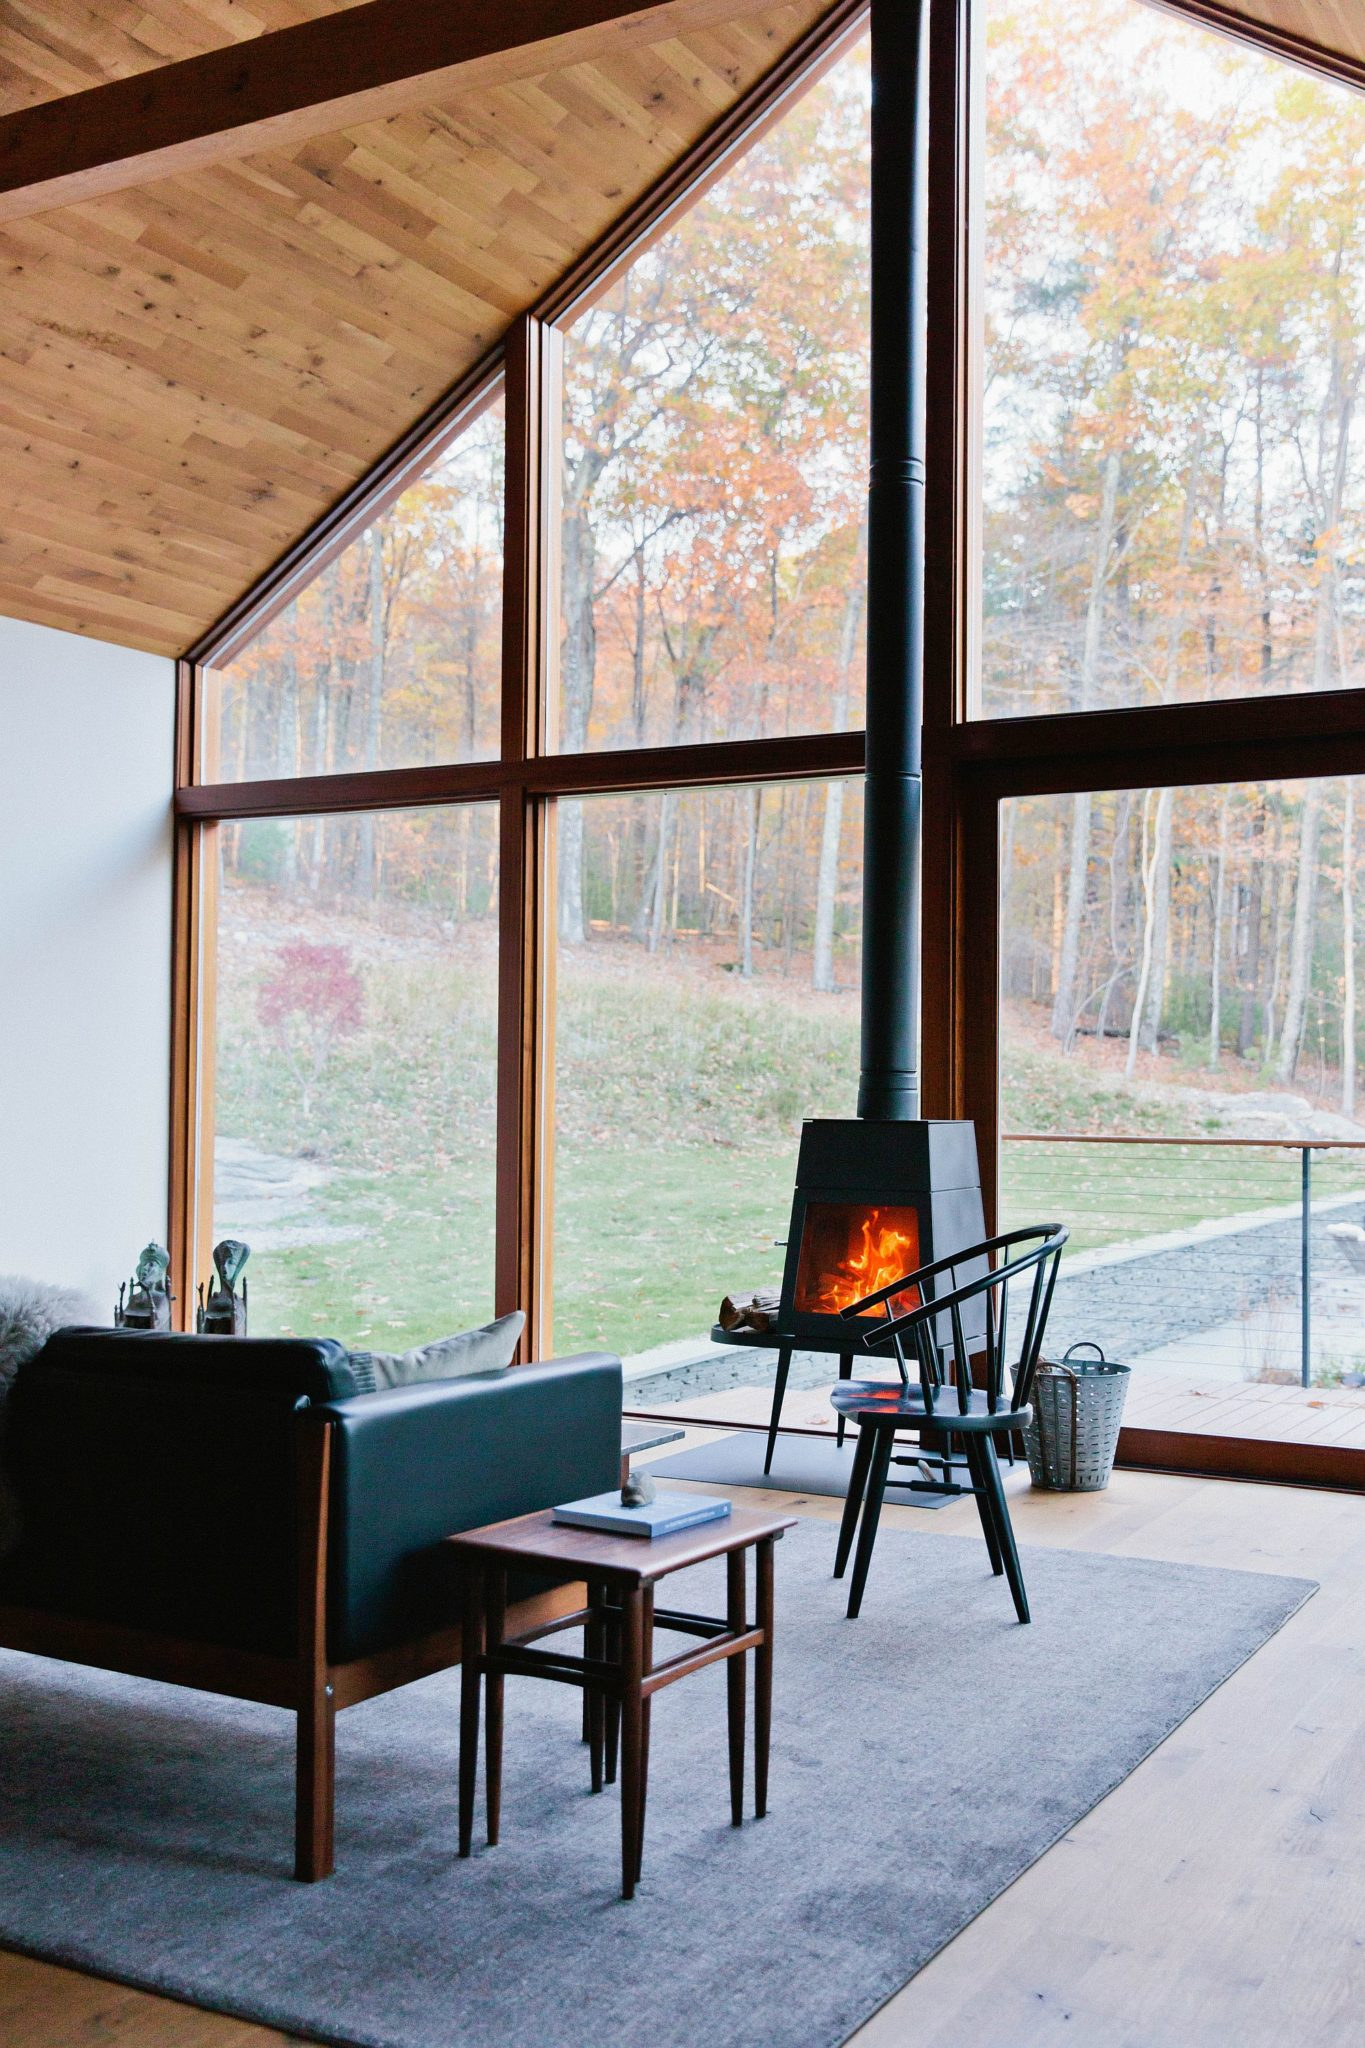 Hudson woods sustainable modern cabins offer an escape Opening glass walls